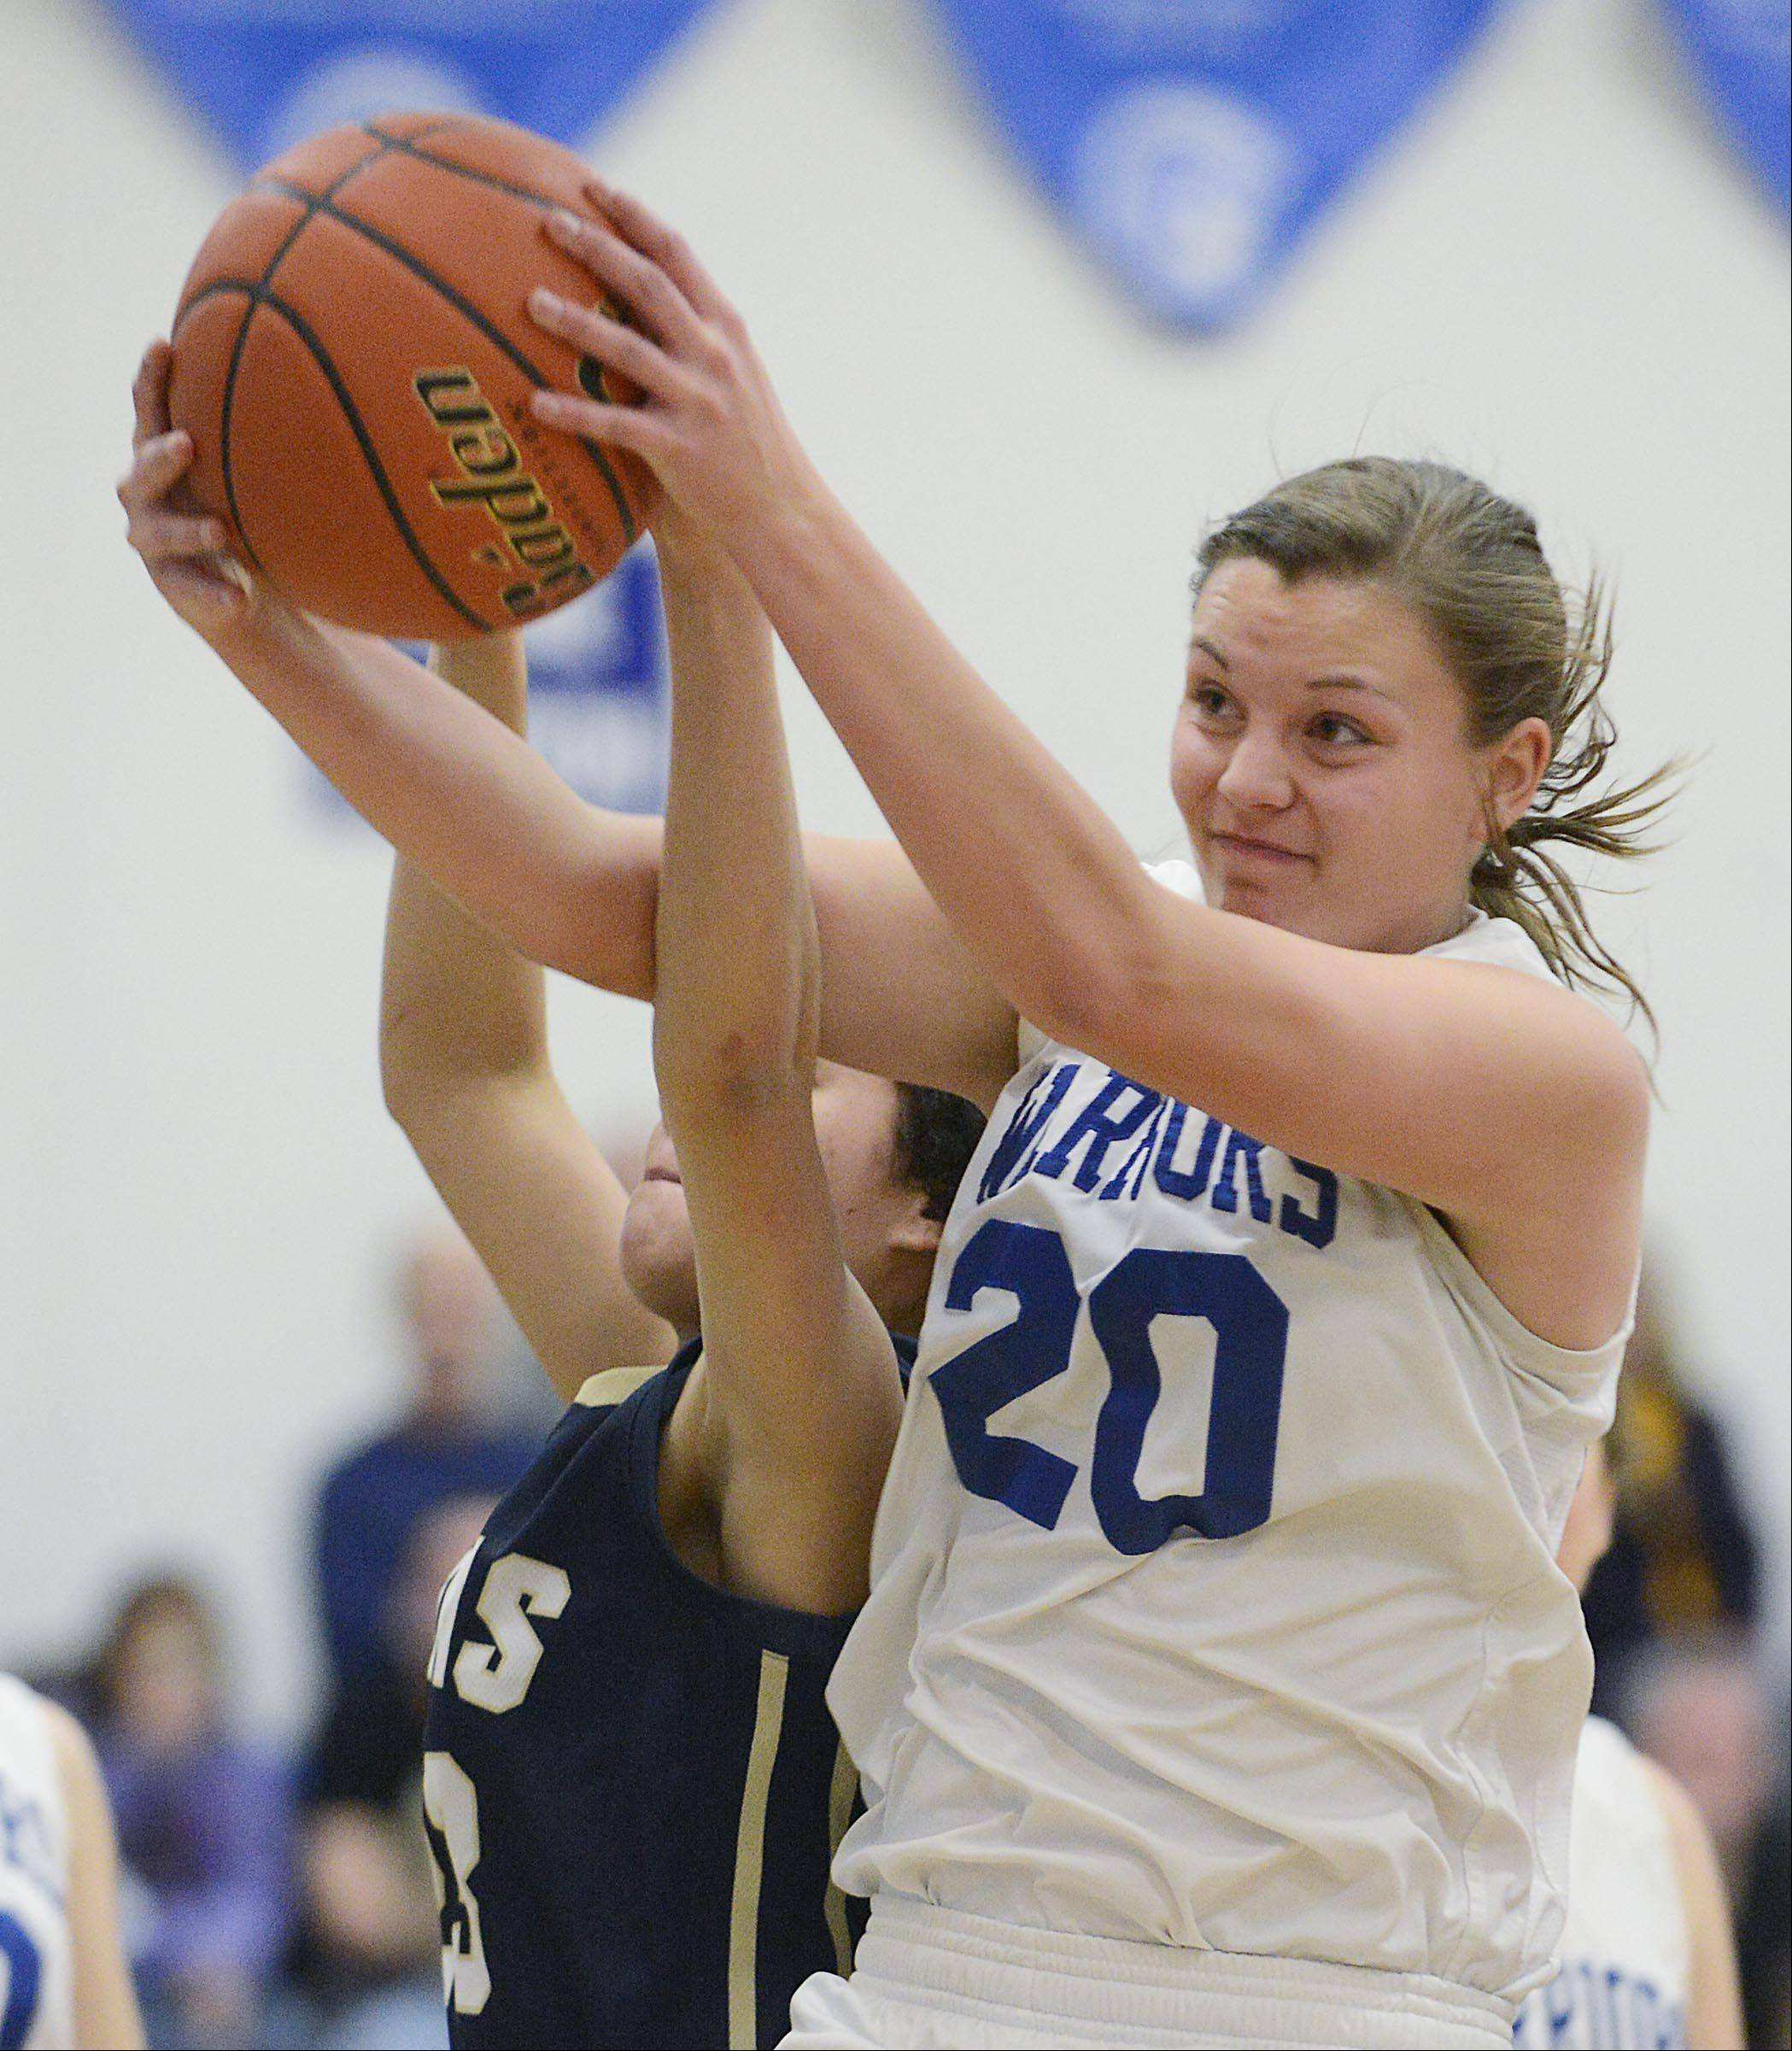 John Starks/jstarks@dailyherald.comWestminster Christian's Claire Speweik gets to a rebound before Harvest Christian's Gabi Rodriguez Monday in Elgin.